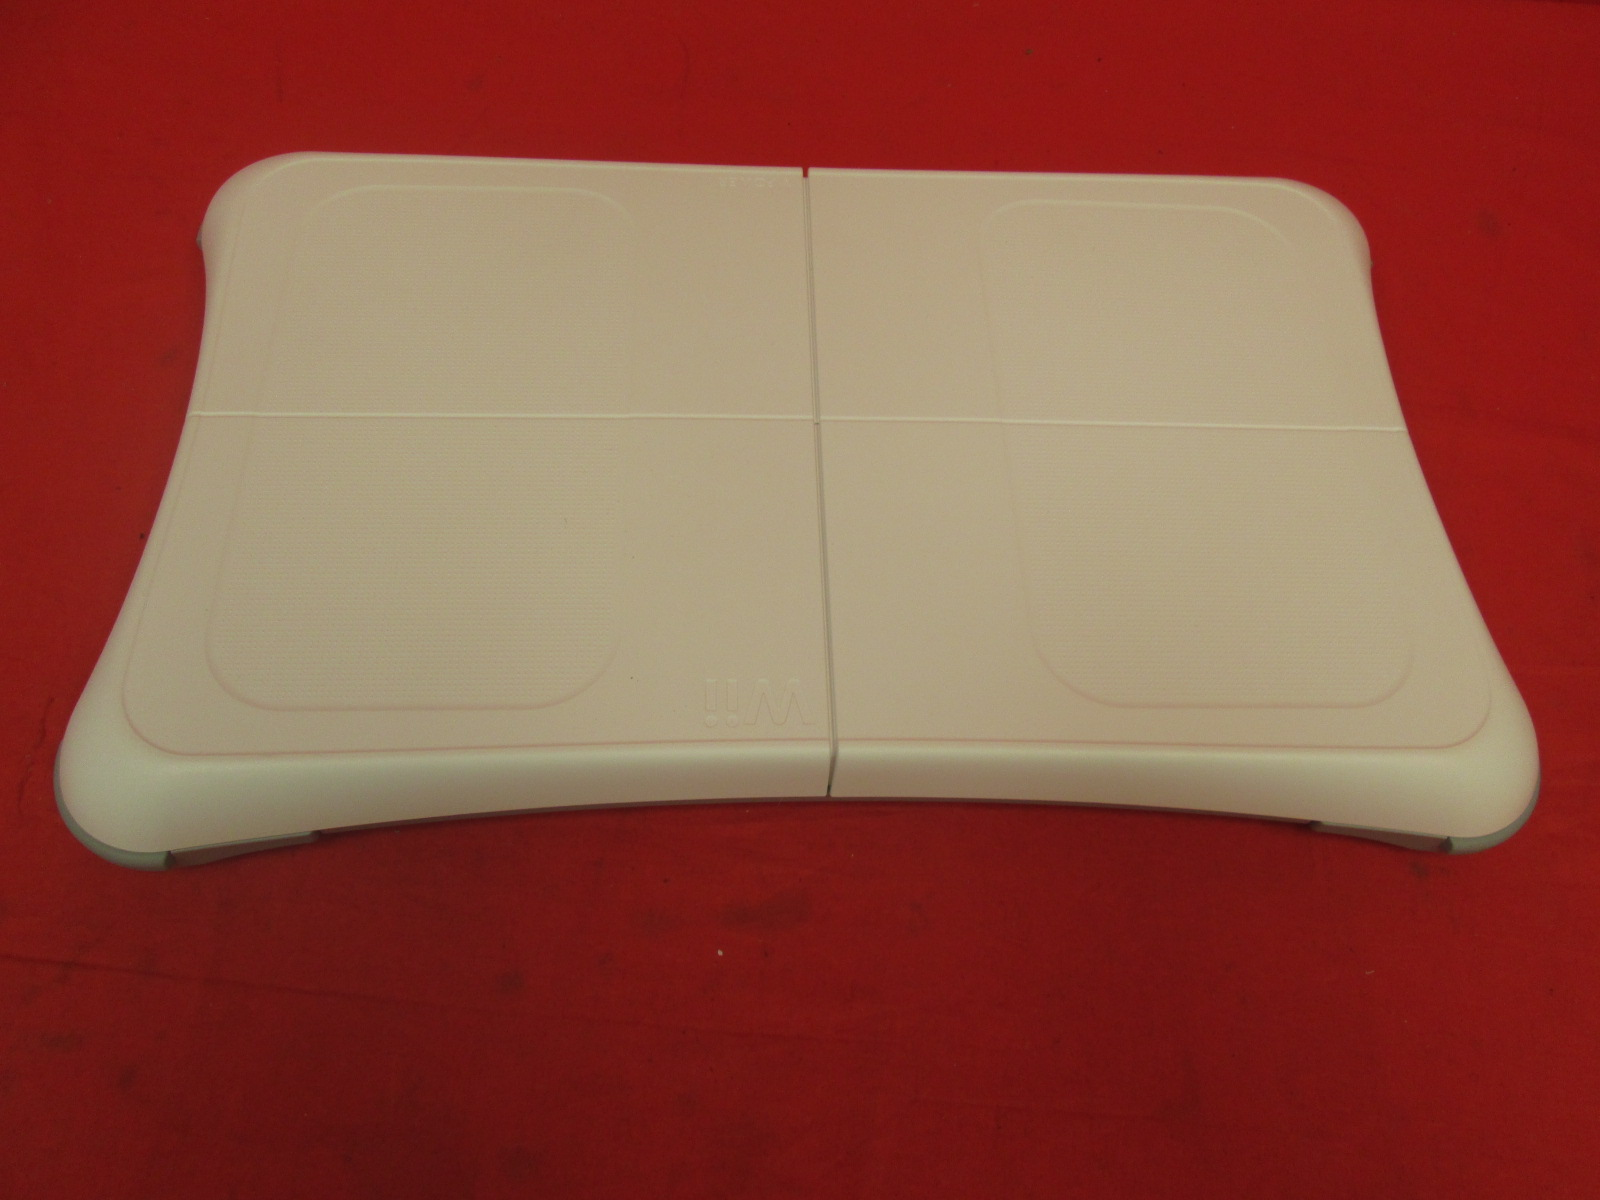 Nintendo Balance Board For Wii